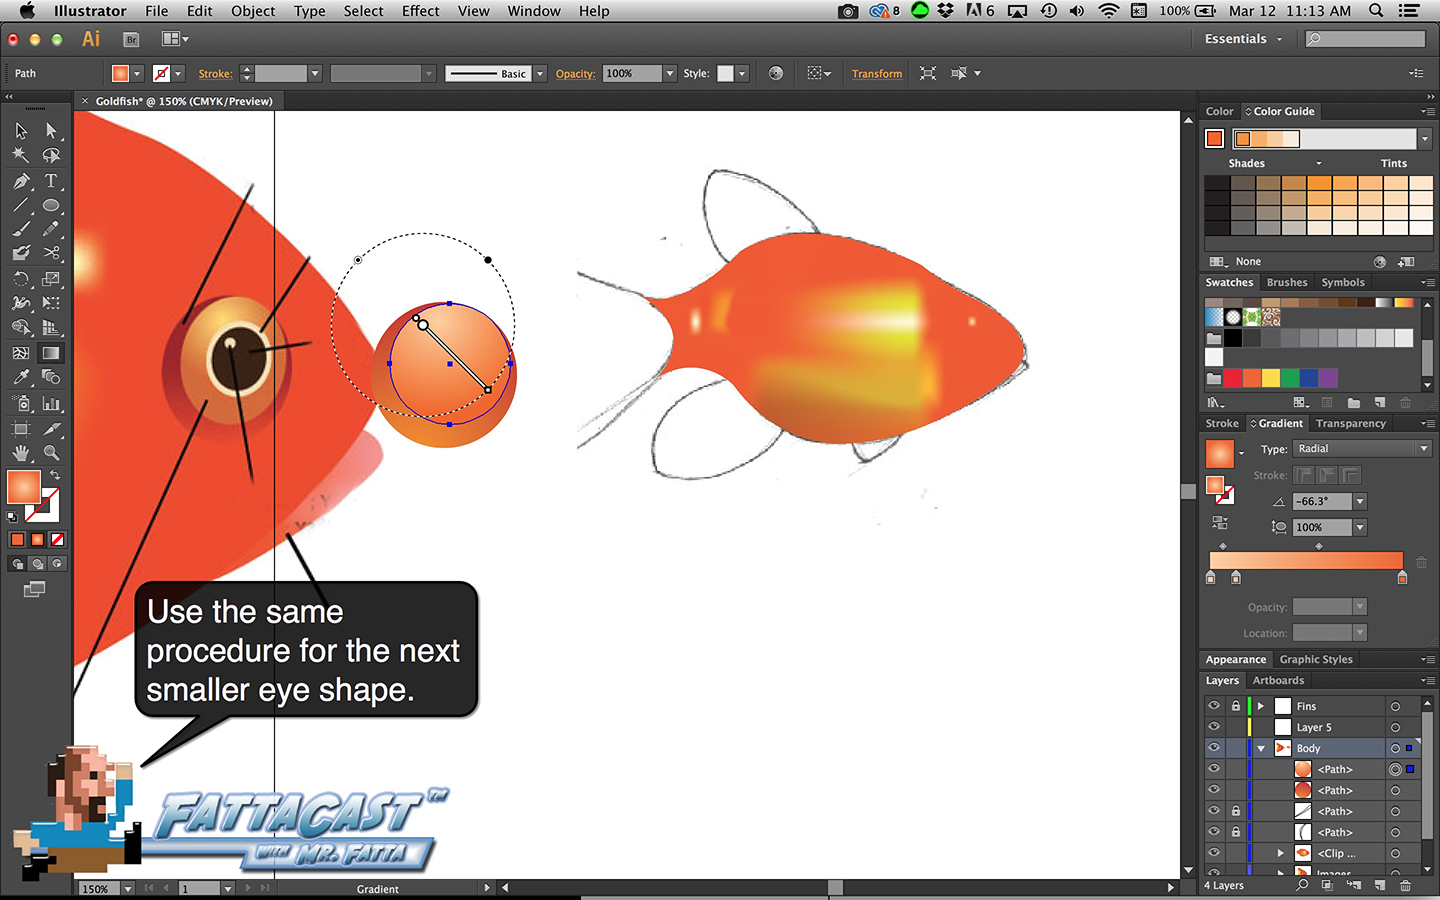 Goldfish Step 15